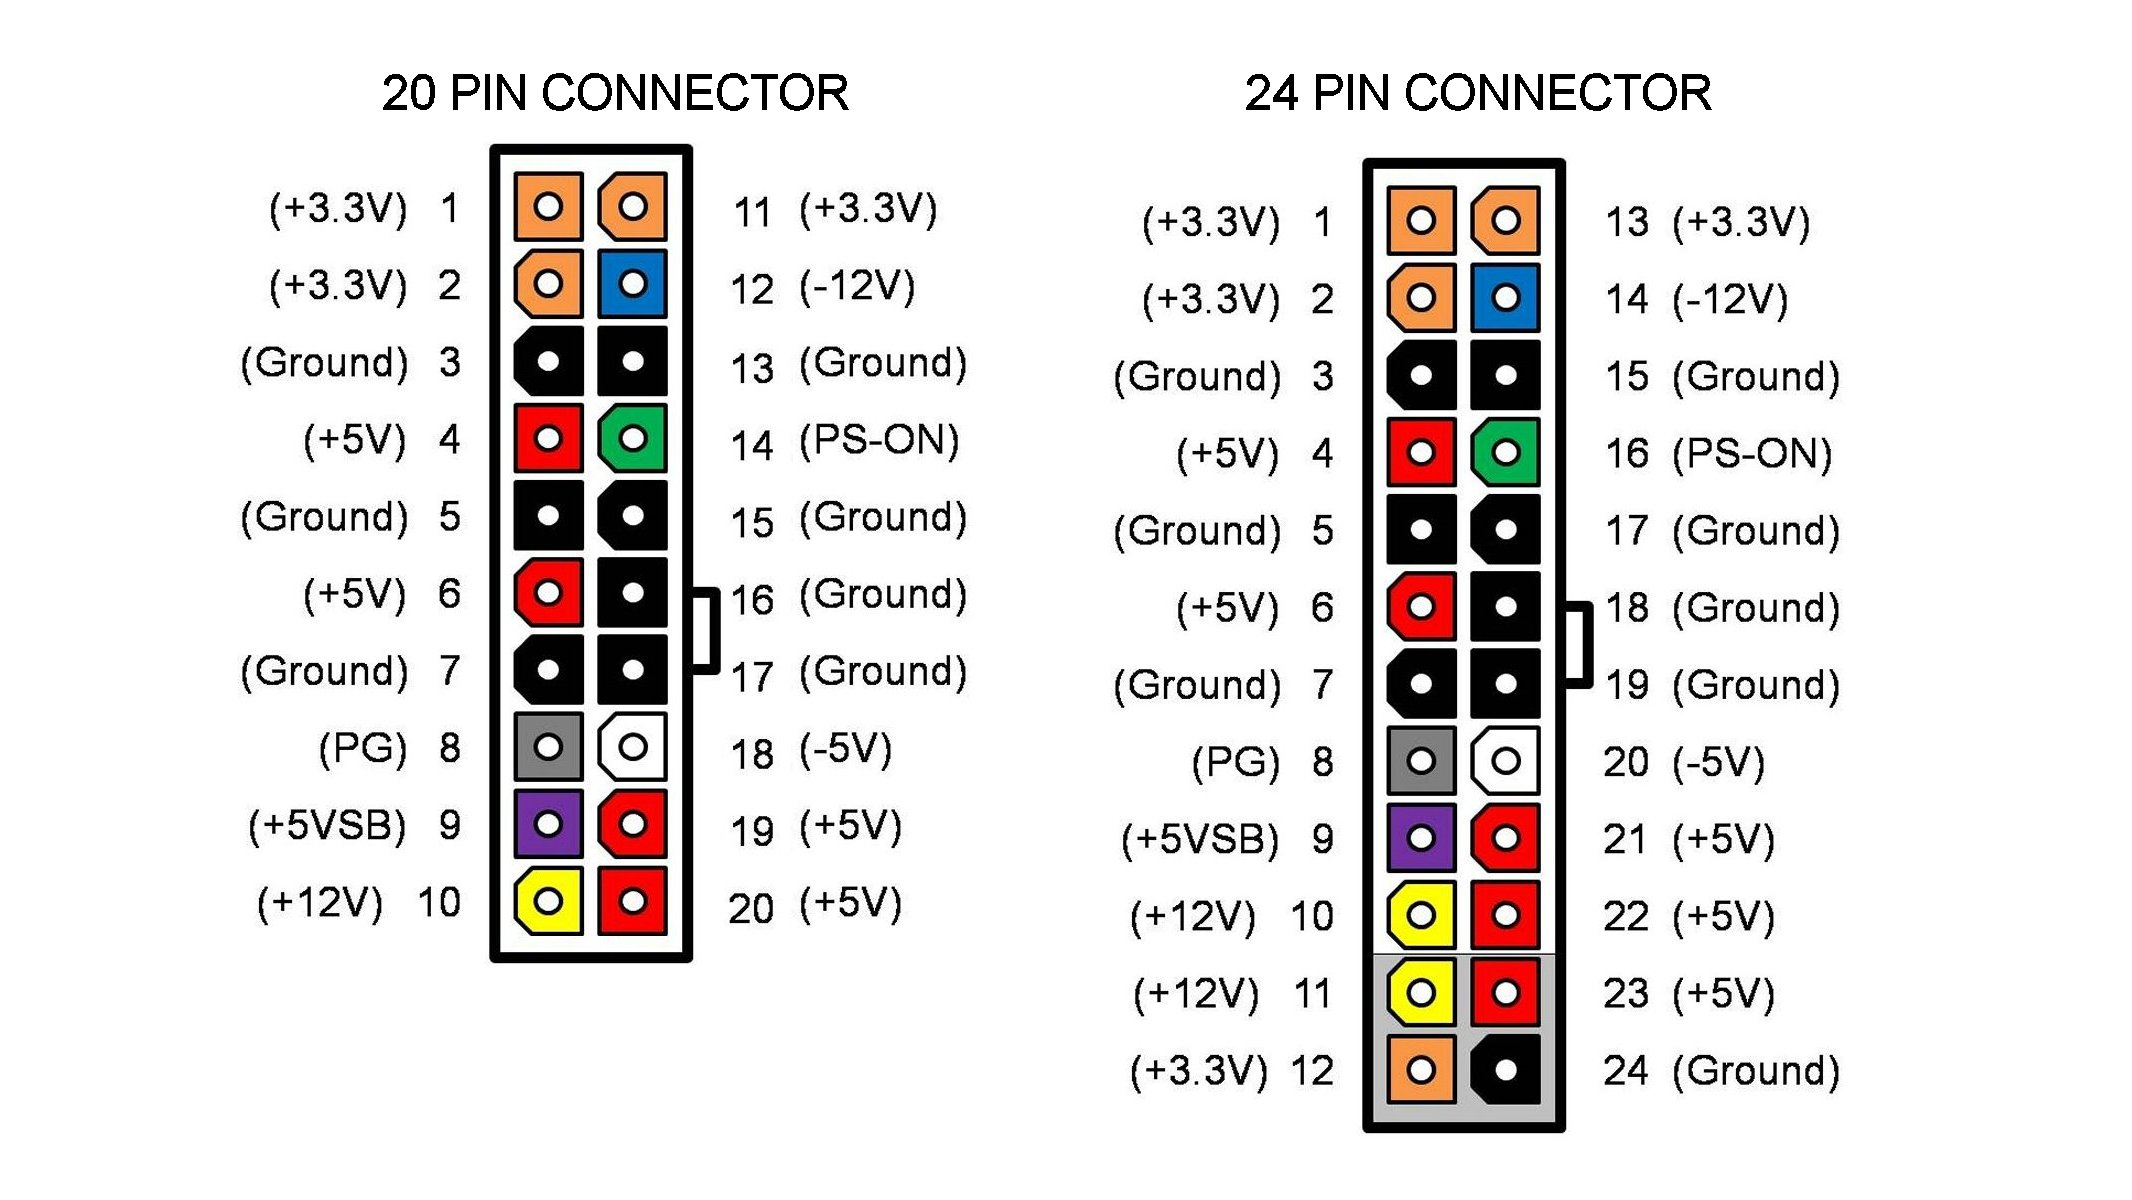 medium resolution of cable wiring diagram for computer wiring diagram article review apple cord wiring diagram pc power wire